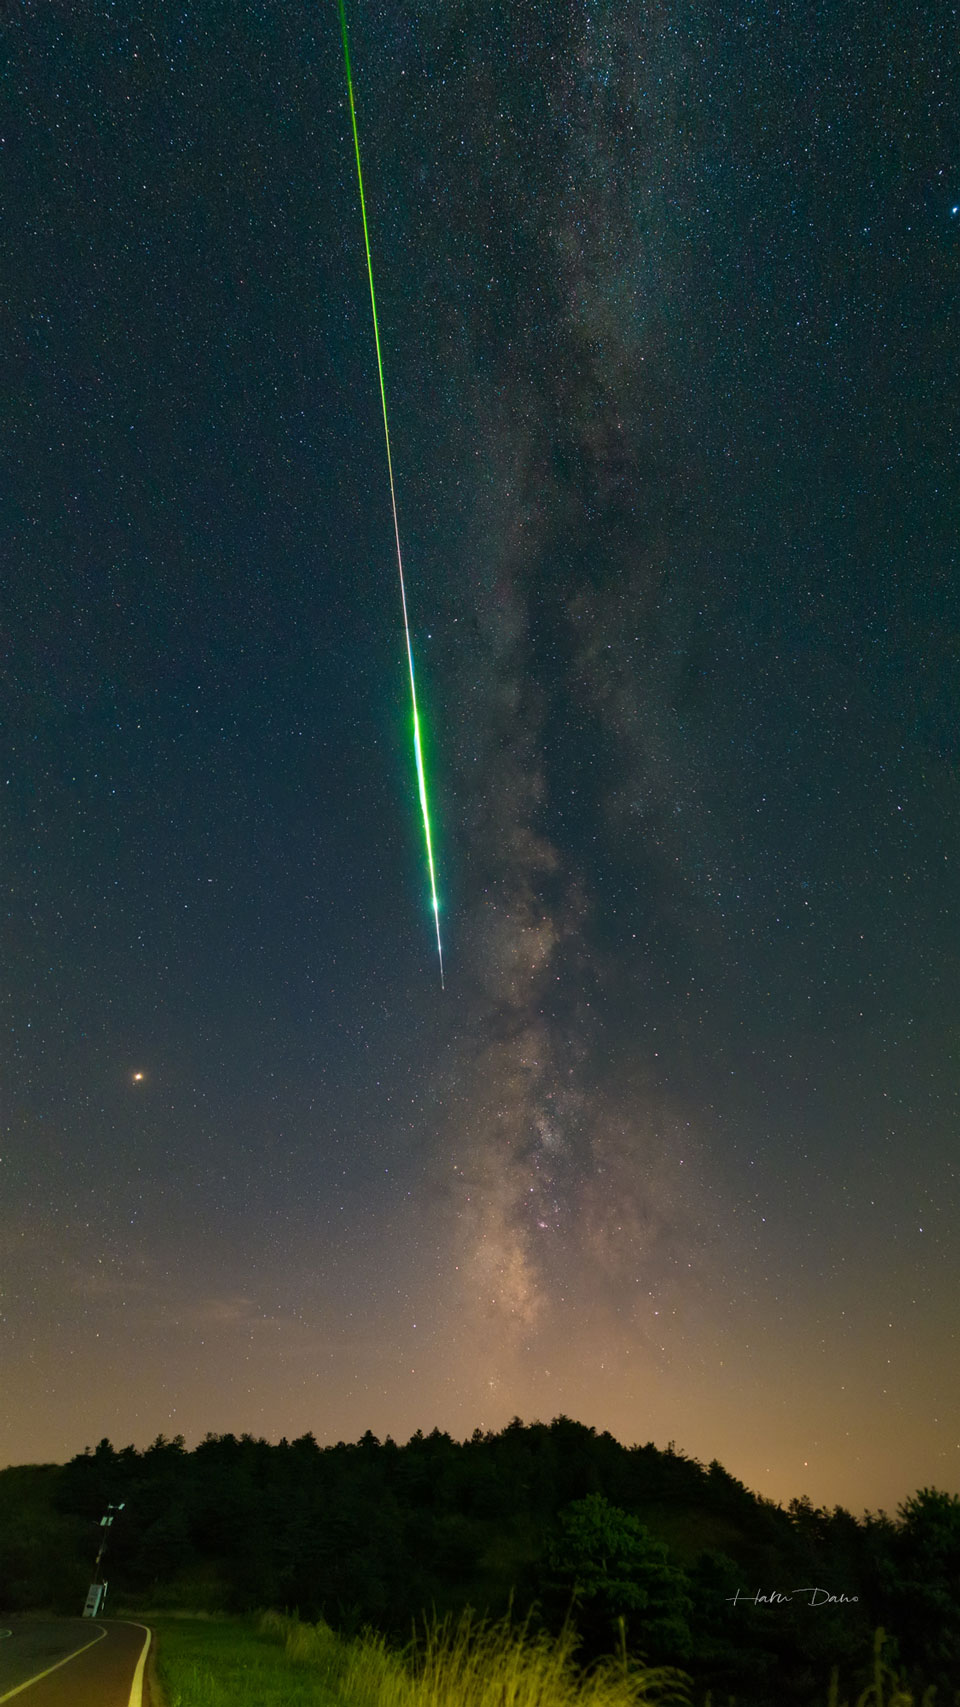 A Perseid Meteor and the Milky Way